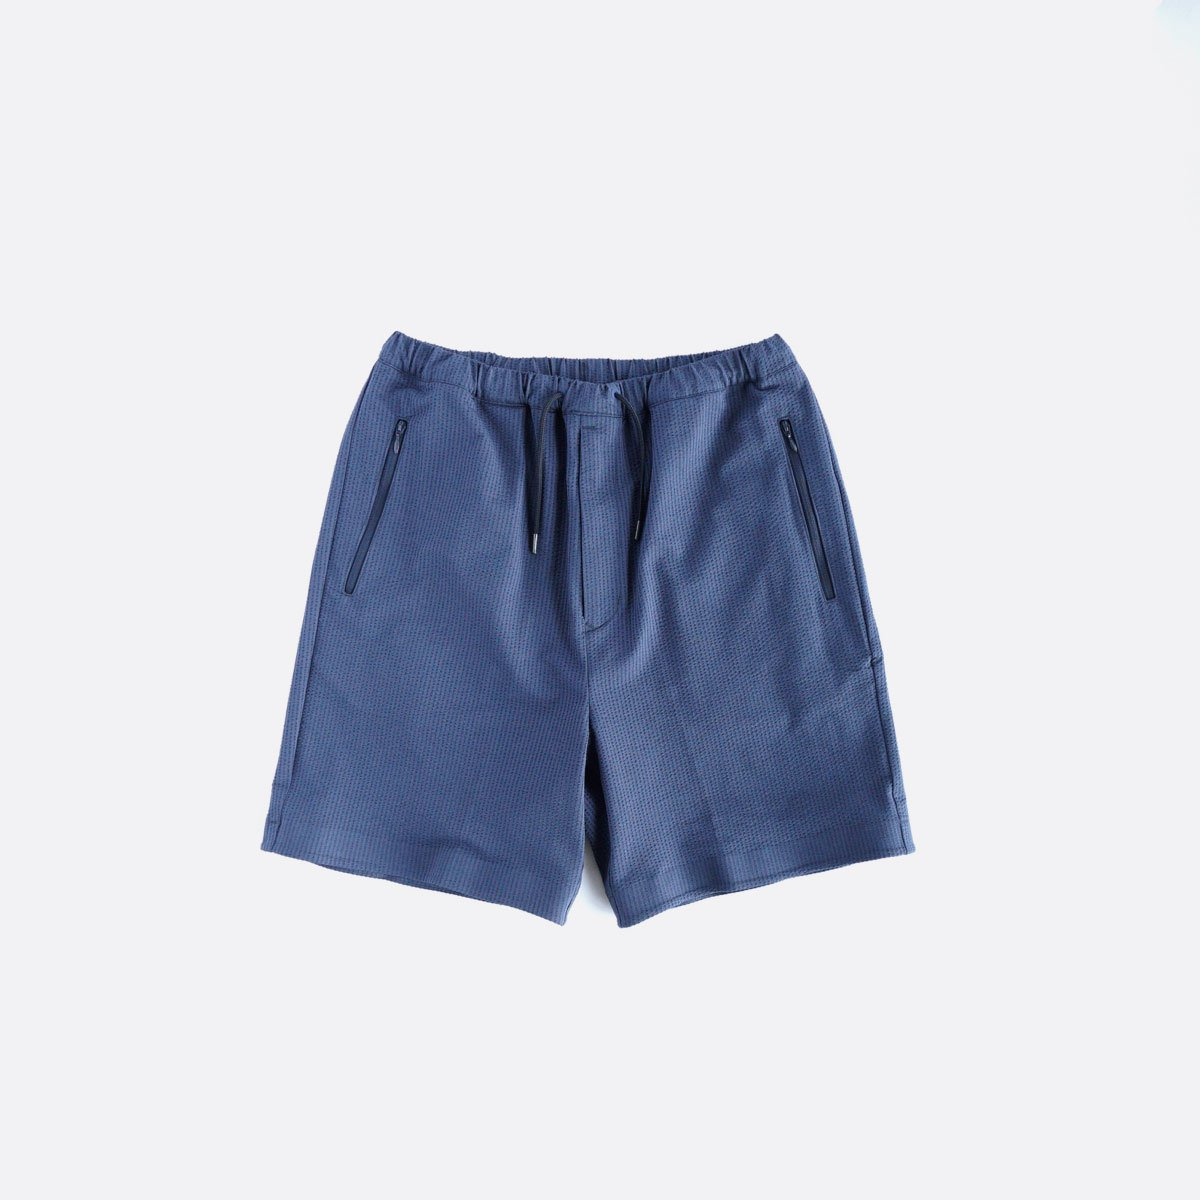 DESCENTE PAUSE SEERSUCKER SHORT PANTS (NAVY)